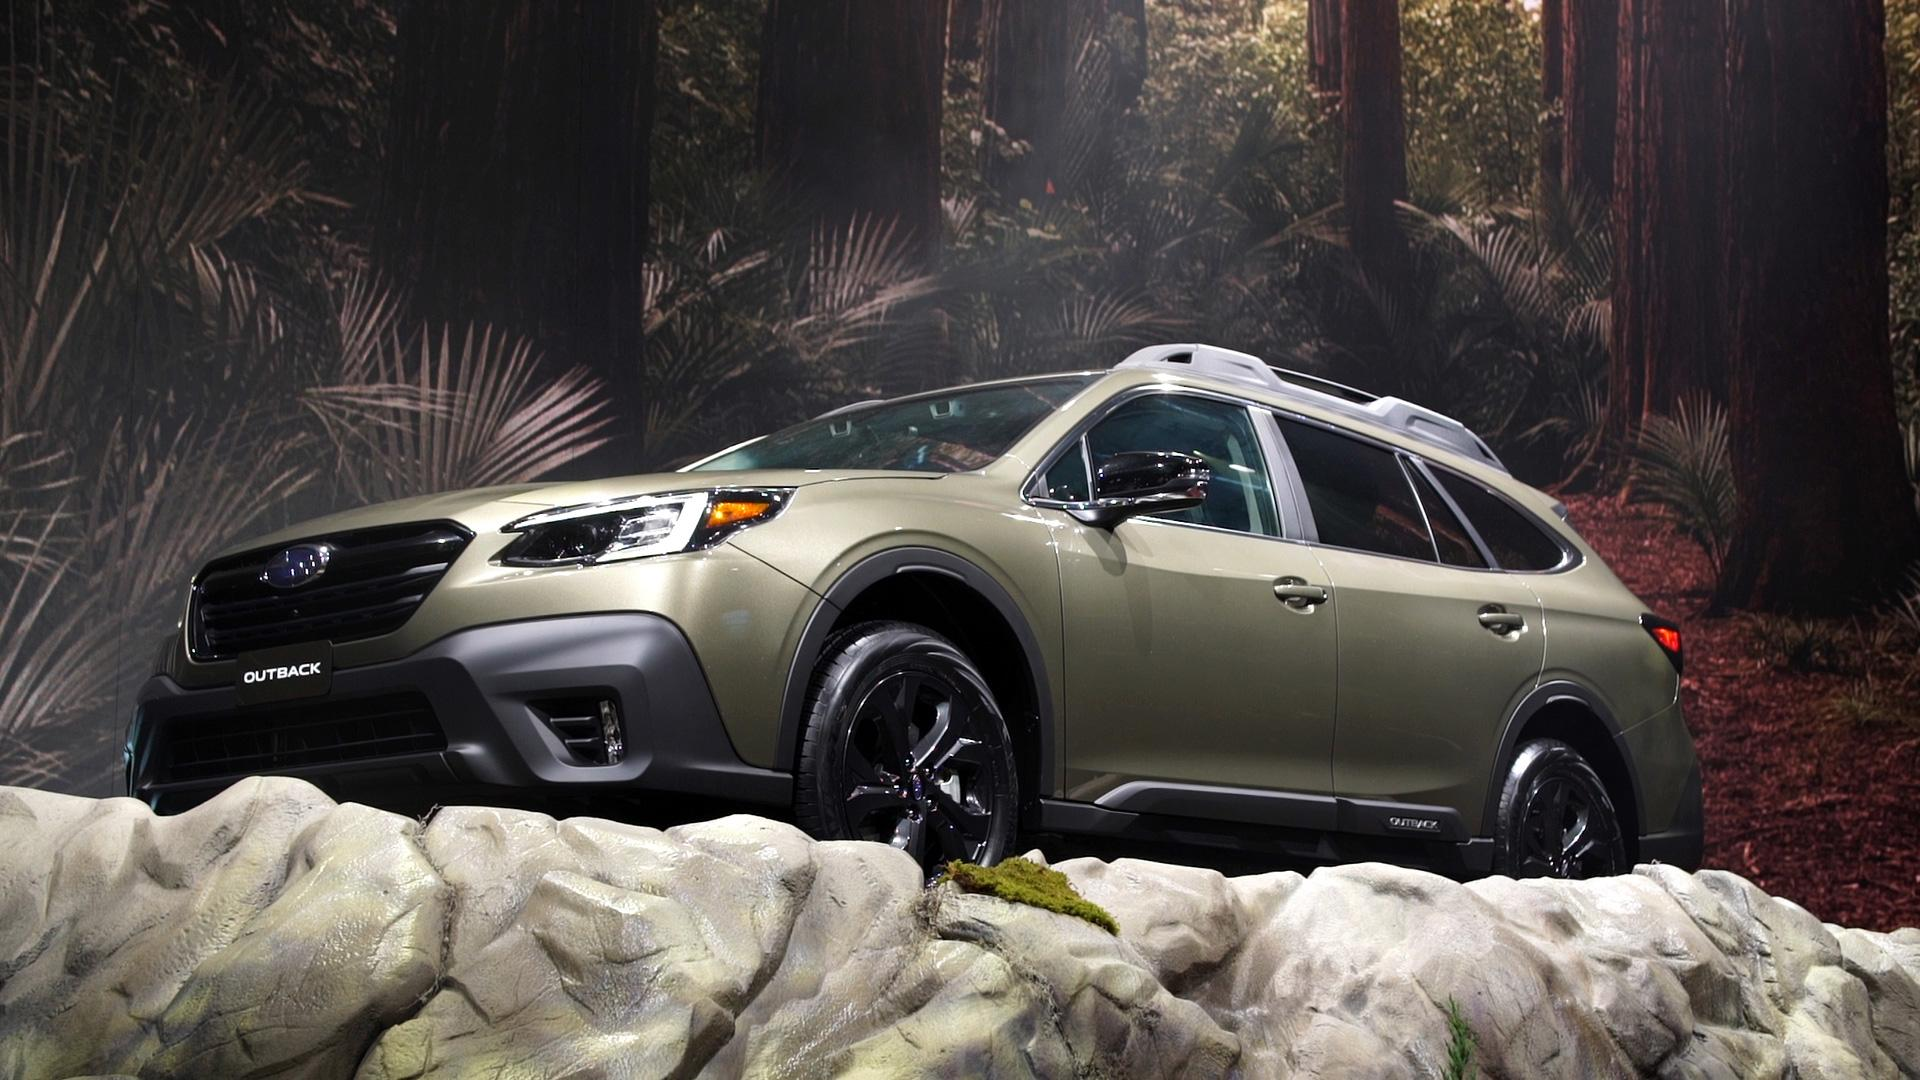 2020 Subaru Outback Hybrid Specs And Price >> 2020 Subaru Outback Consumer Reports